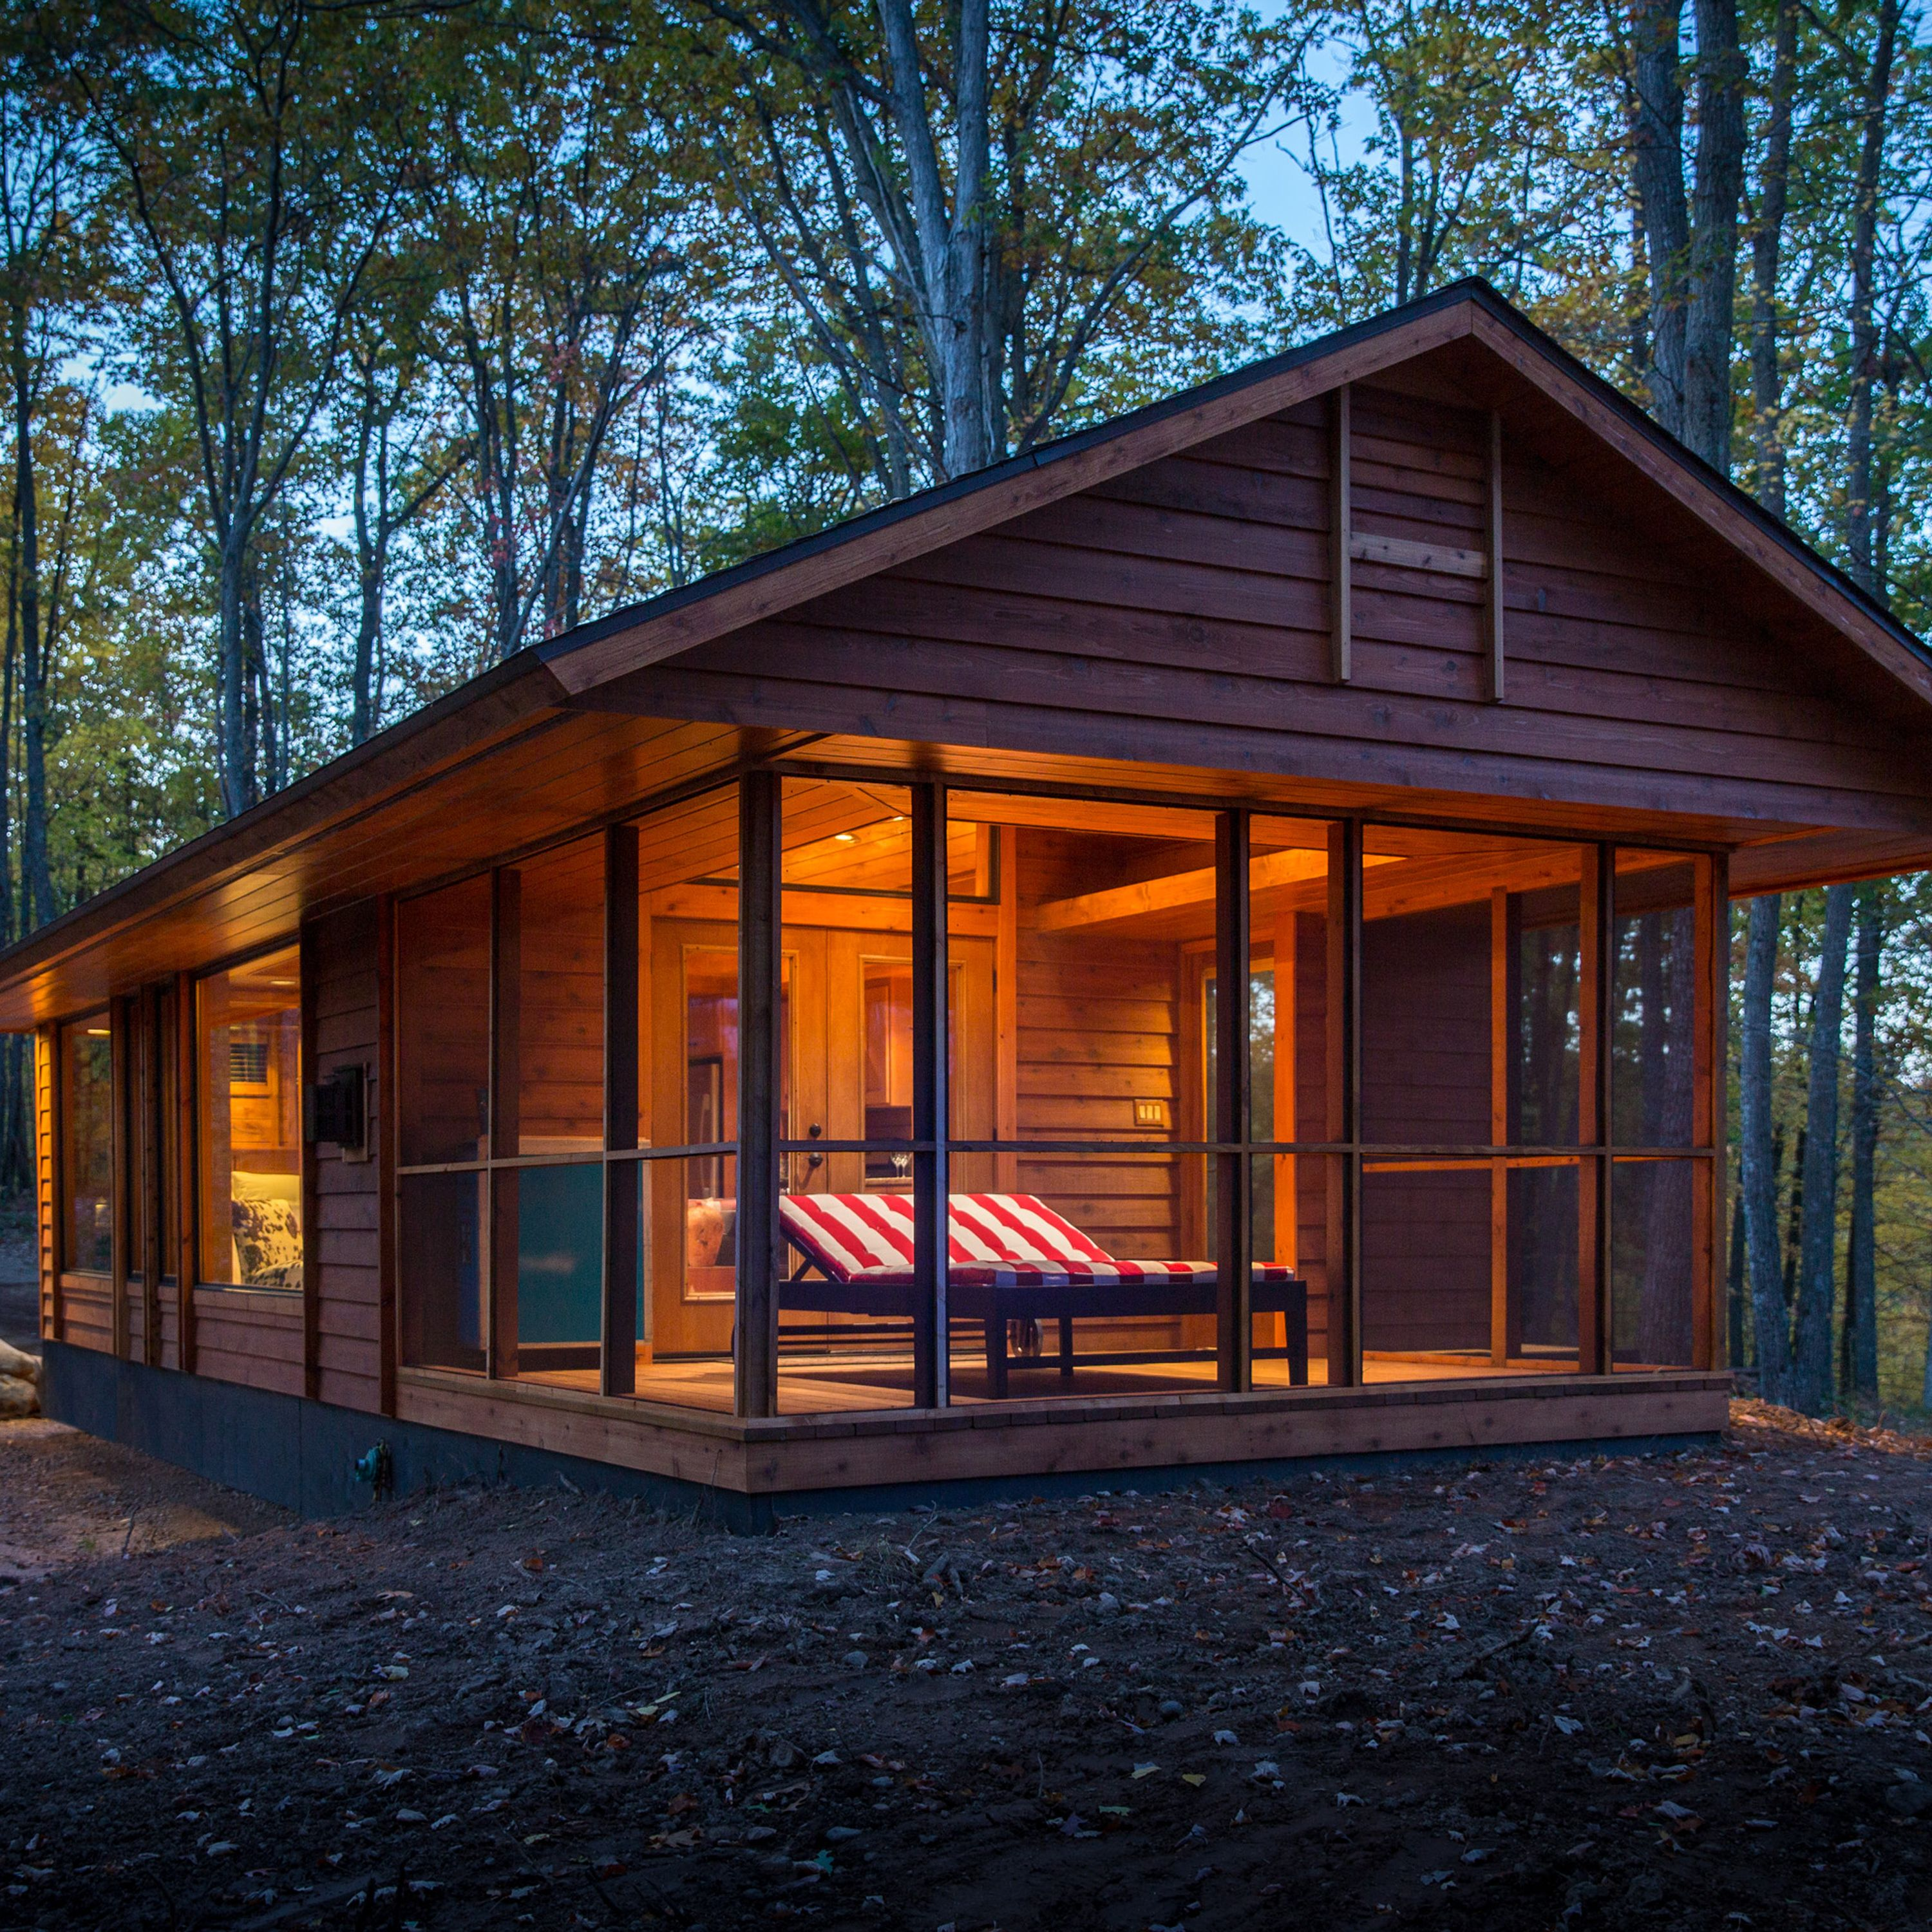 "<p dir=""ltr"">Inspired by and built by the team responsible for the gorgeous cottages at the <a href=""http://www.canoebay.com/"" target=""_blank"">Canoe Bay&nbsp&#x3B;resort</a> in the woods of Wisconsin, the 392-square-foot Escape looks like a high-end cabin but is actually a 28- by 14-foot Park Model RV on wheels. Vaulted ceilings and a large window wall give an airy feel to the cottage, which includes a living room with fireplace and kitchen wall and a separate bedroom and bath. Large French doors open to a screened porch that can be used as an extended living room, sleeping porch, or a dining area. The red-striped chaise lounge doubles as a bed with heated coils, perfect for naps on chilly days. Escape is available to rent at Canoe Bay, or can be custom-built for buyers and delivered ready to live-in. Prices start at $79,900.</p>